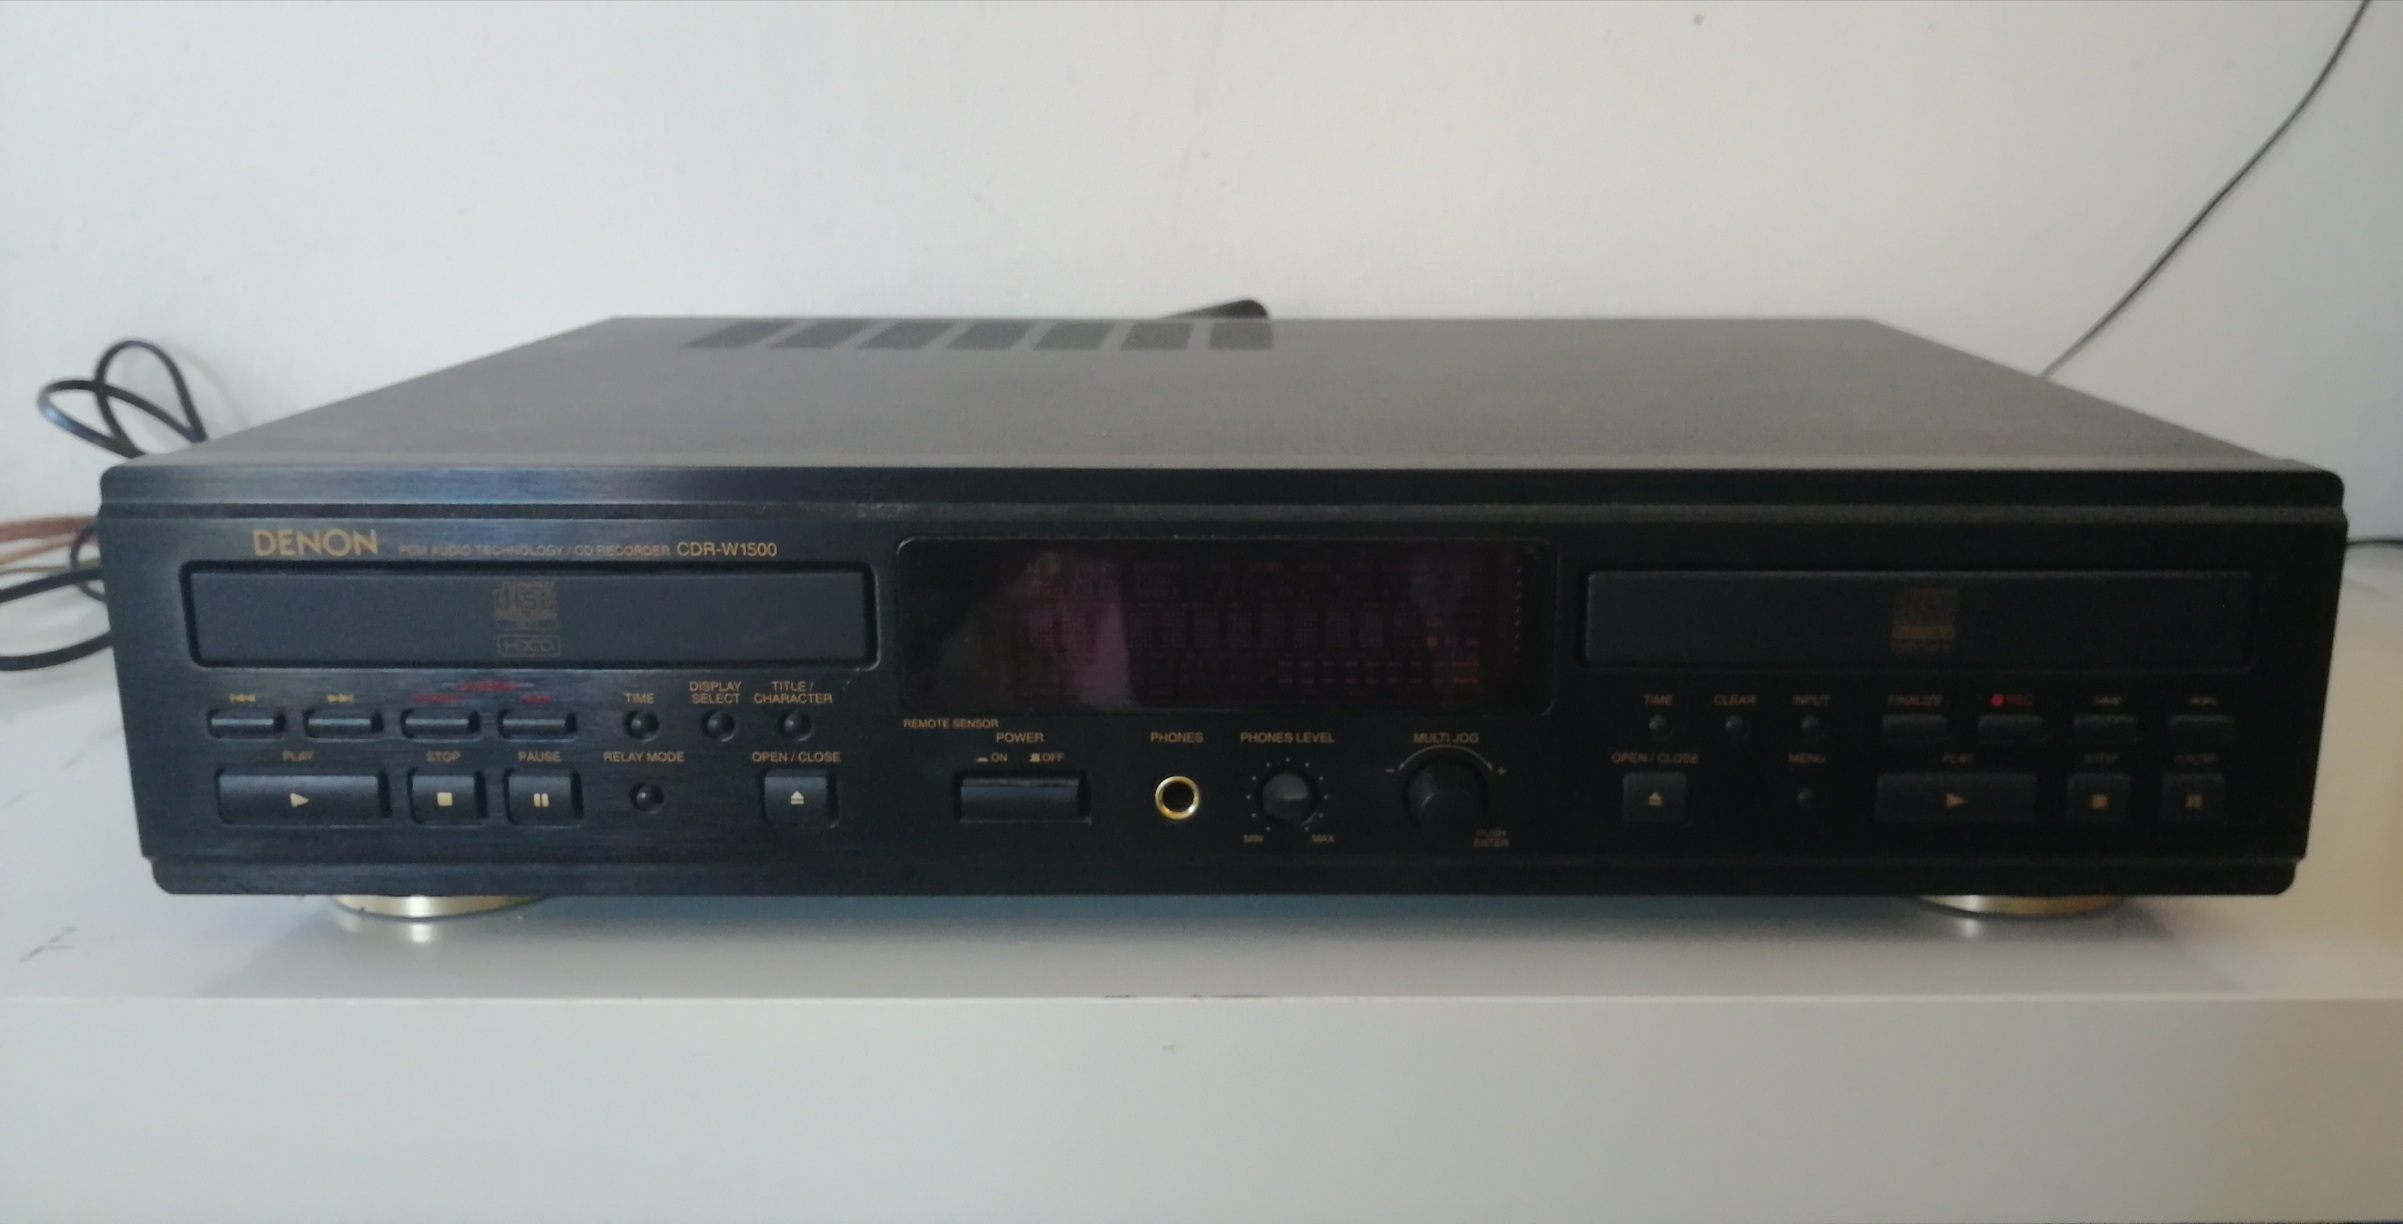 Denon CDR-W-1500 (Double Deck CD Recorder with Remote and Manual)